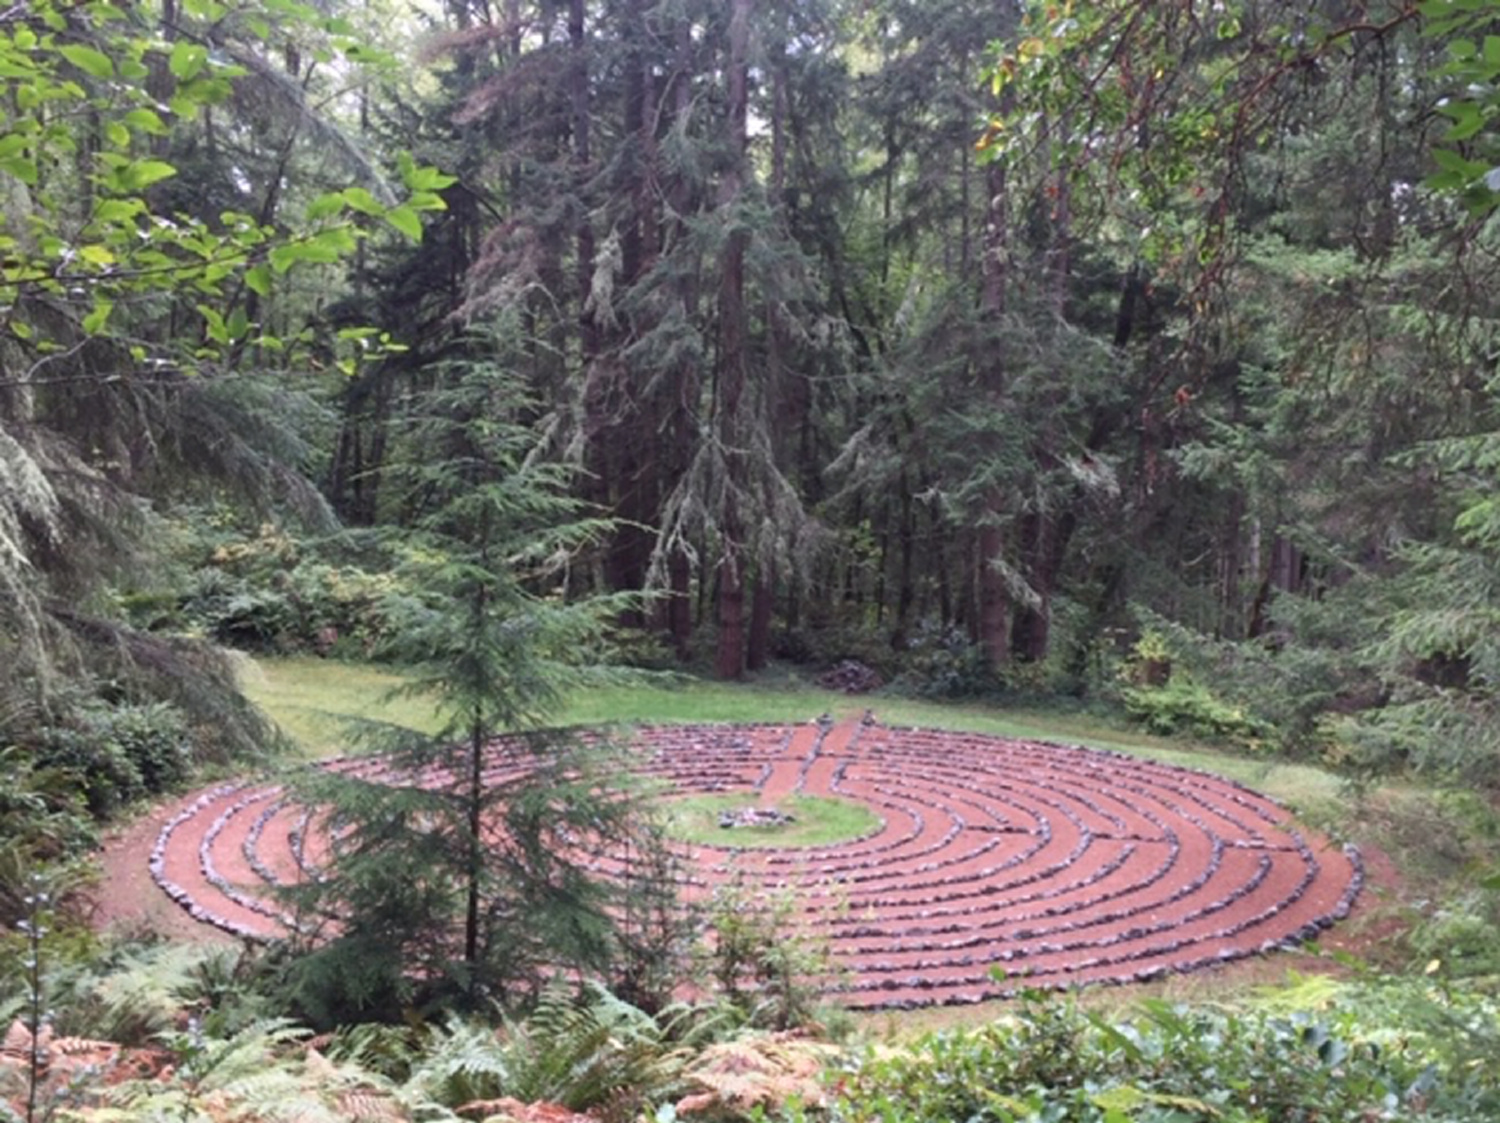 The labyrinth at the Whidbey Institute on Whidbey Island, Washington